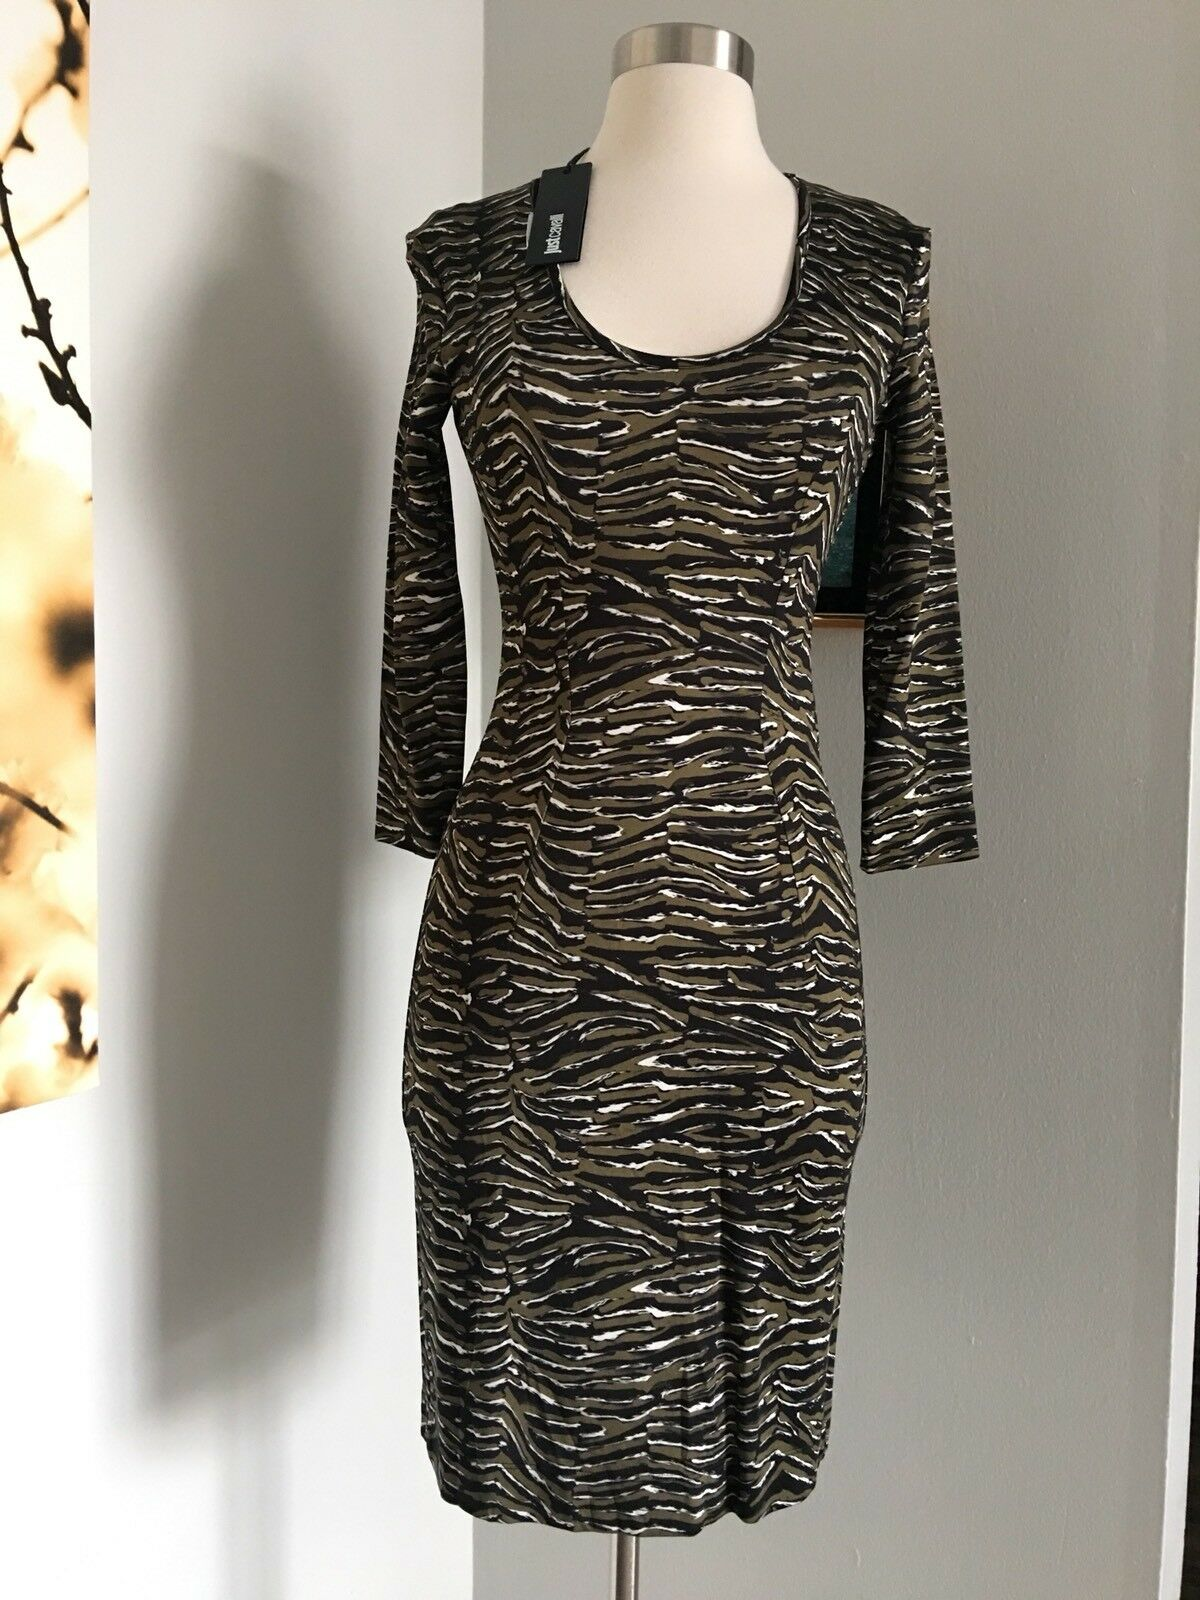 NWT JUST JUST JUST CAVALLI 3 4 SLEEVE FITTED STRETCH DRESS SIZE 40 MADE IN ITALY 09eb92